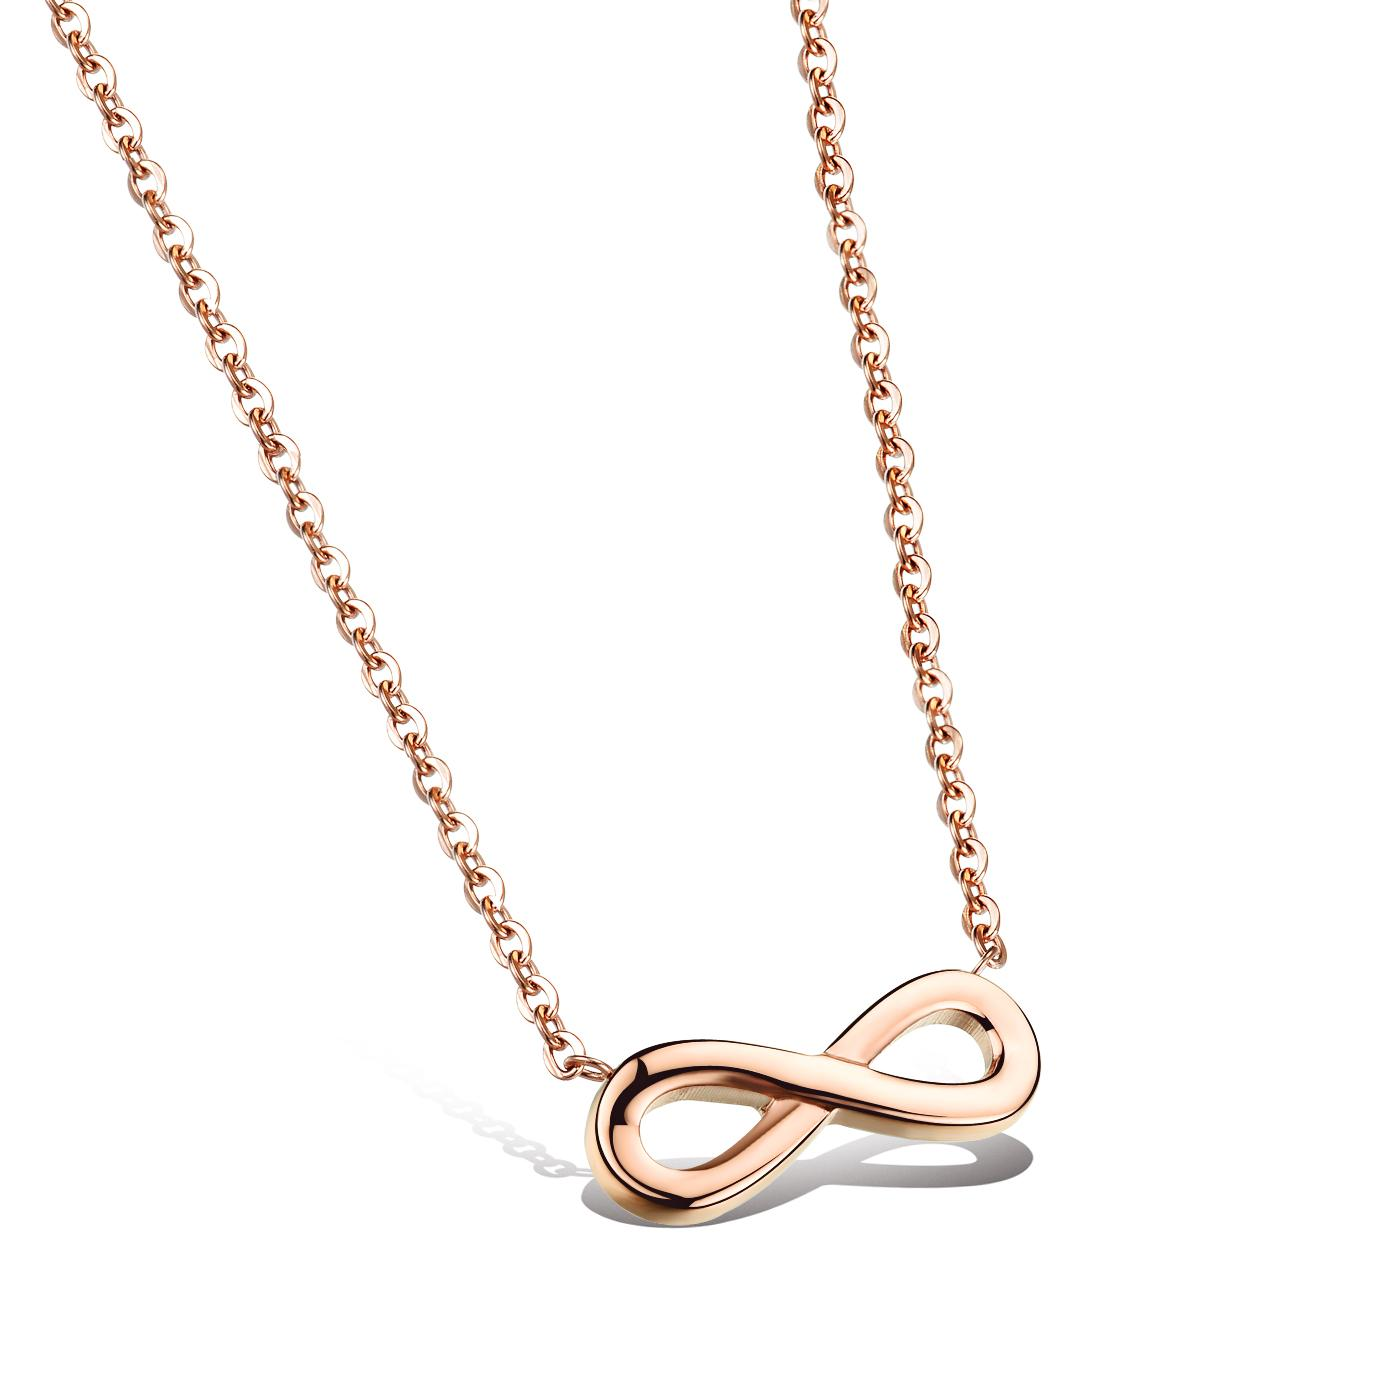 How To Choose Gold Necklace For Women - StyleSkier.com